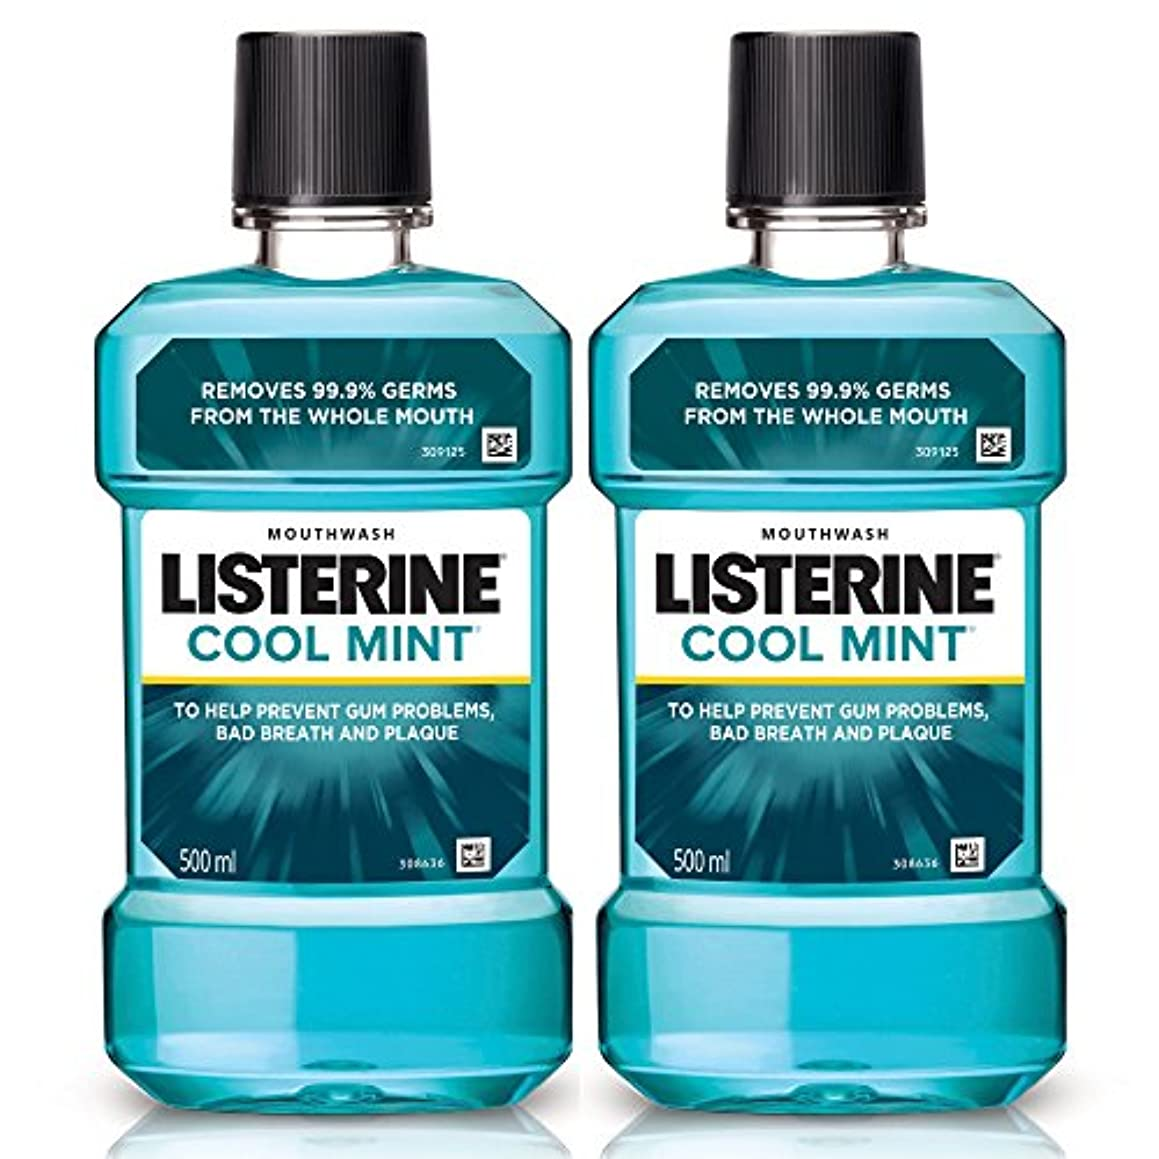 カトリック教徒判定見せますListerine Cool Mint Mouthwash 500ml (Pack of 2)